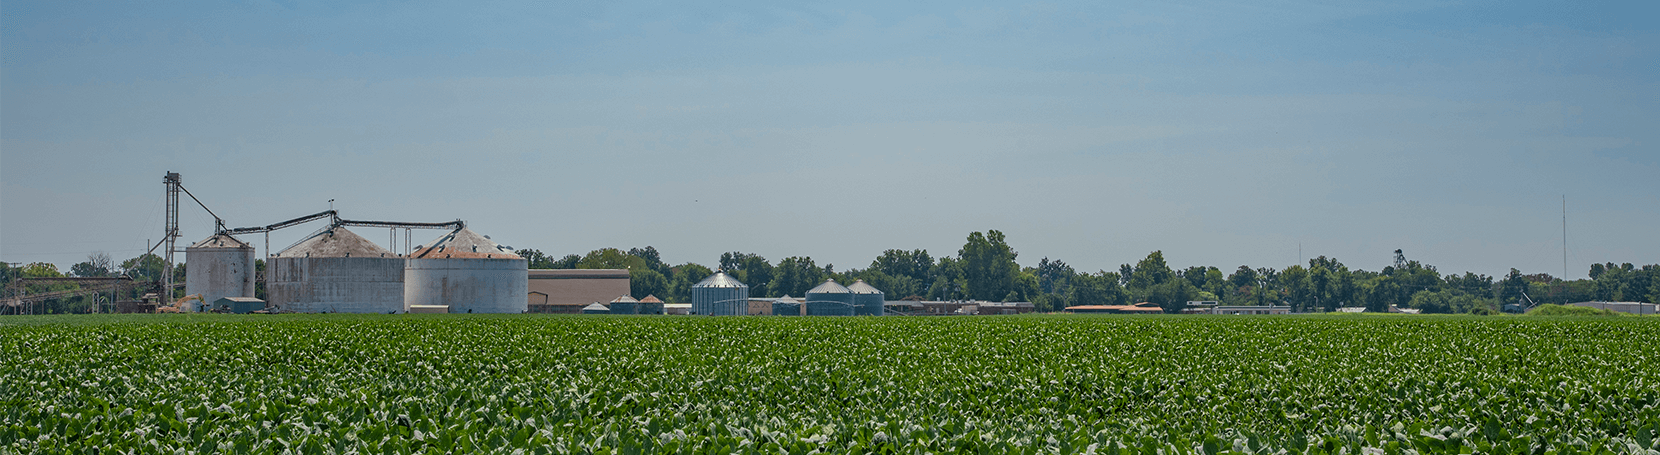 Agriculture field with silos.